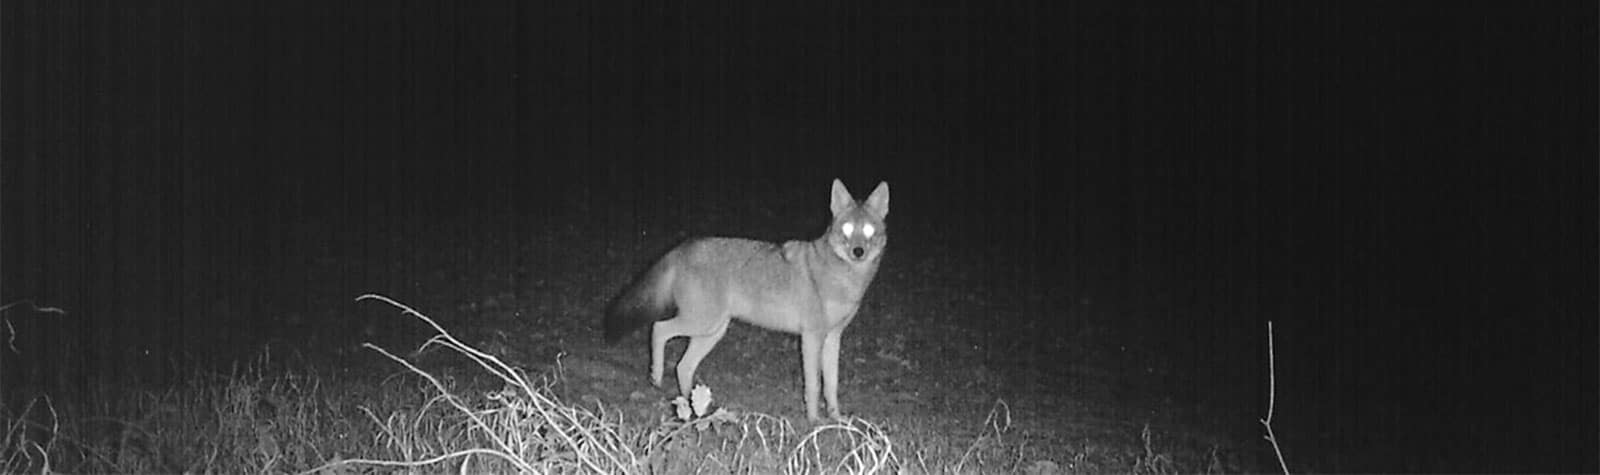 Coyote Hunting at Night: Best Night Time Tips